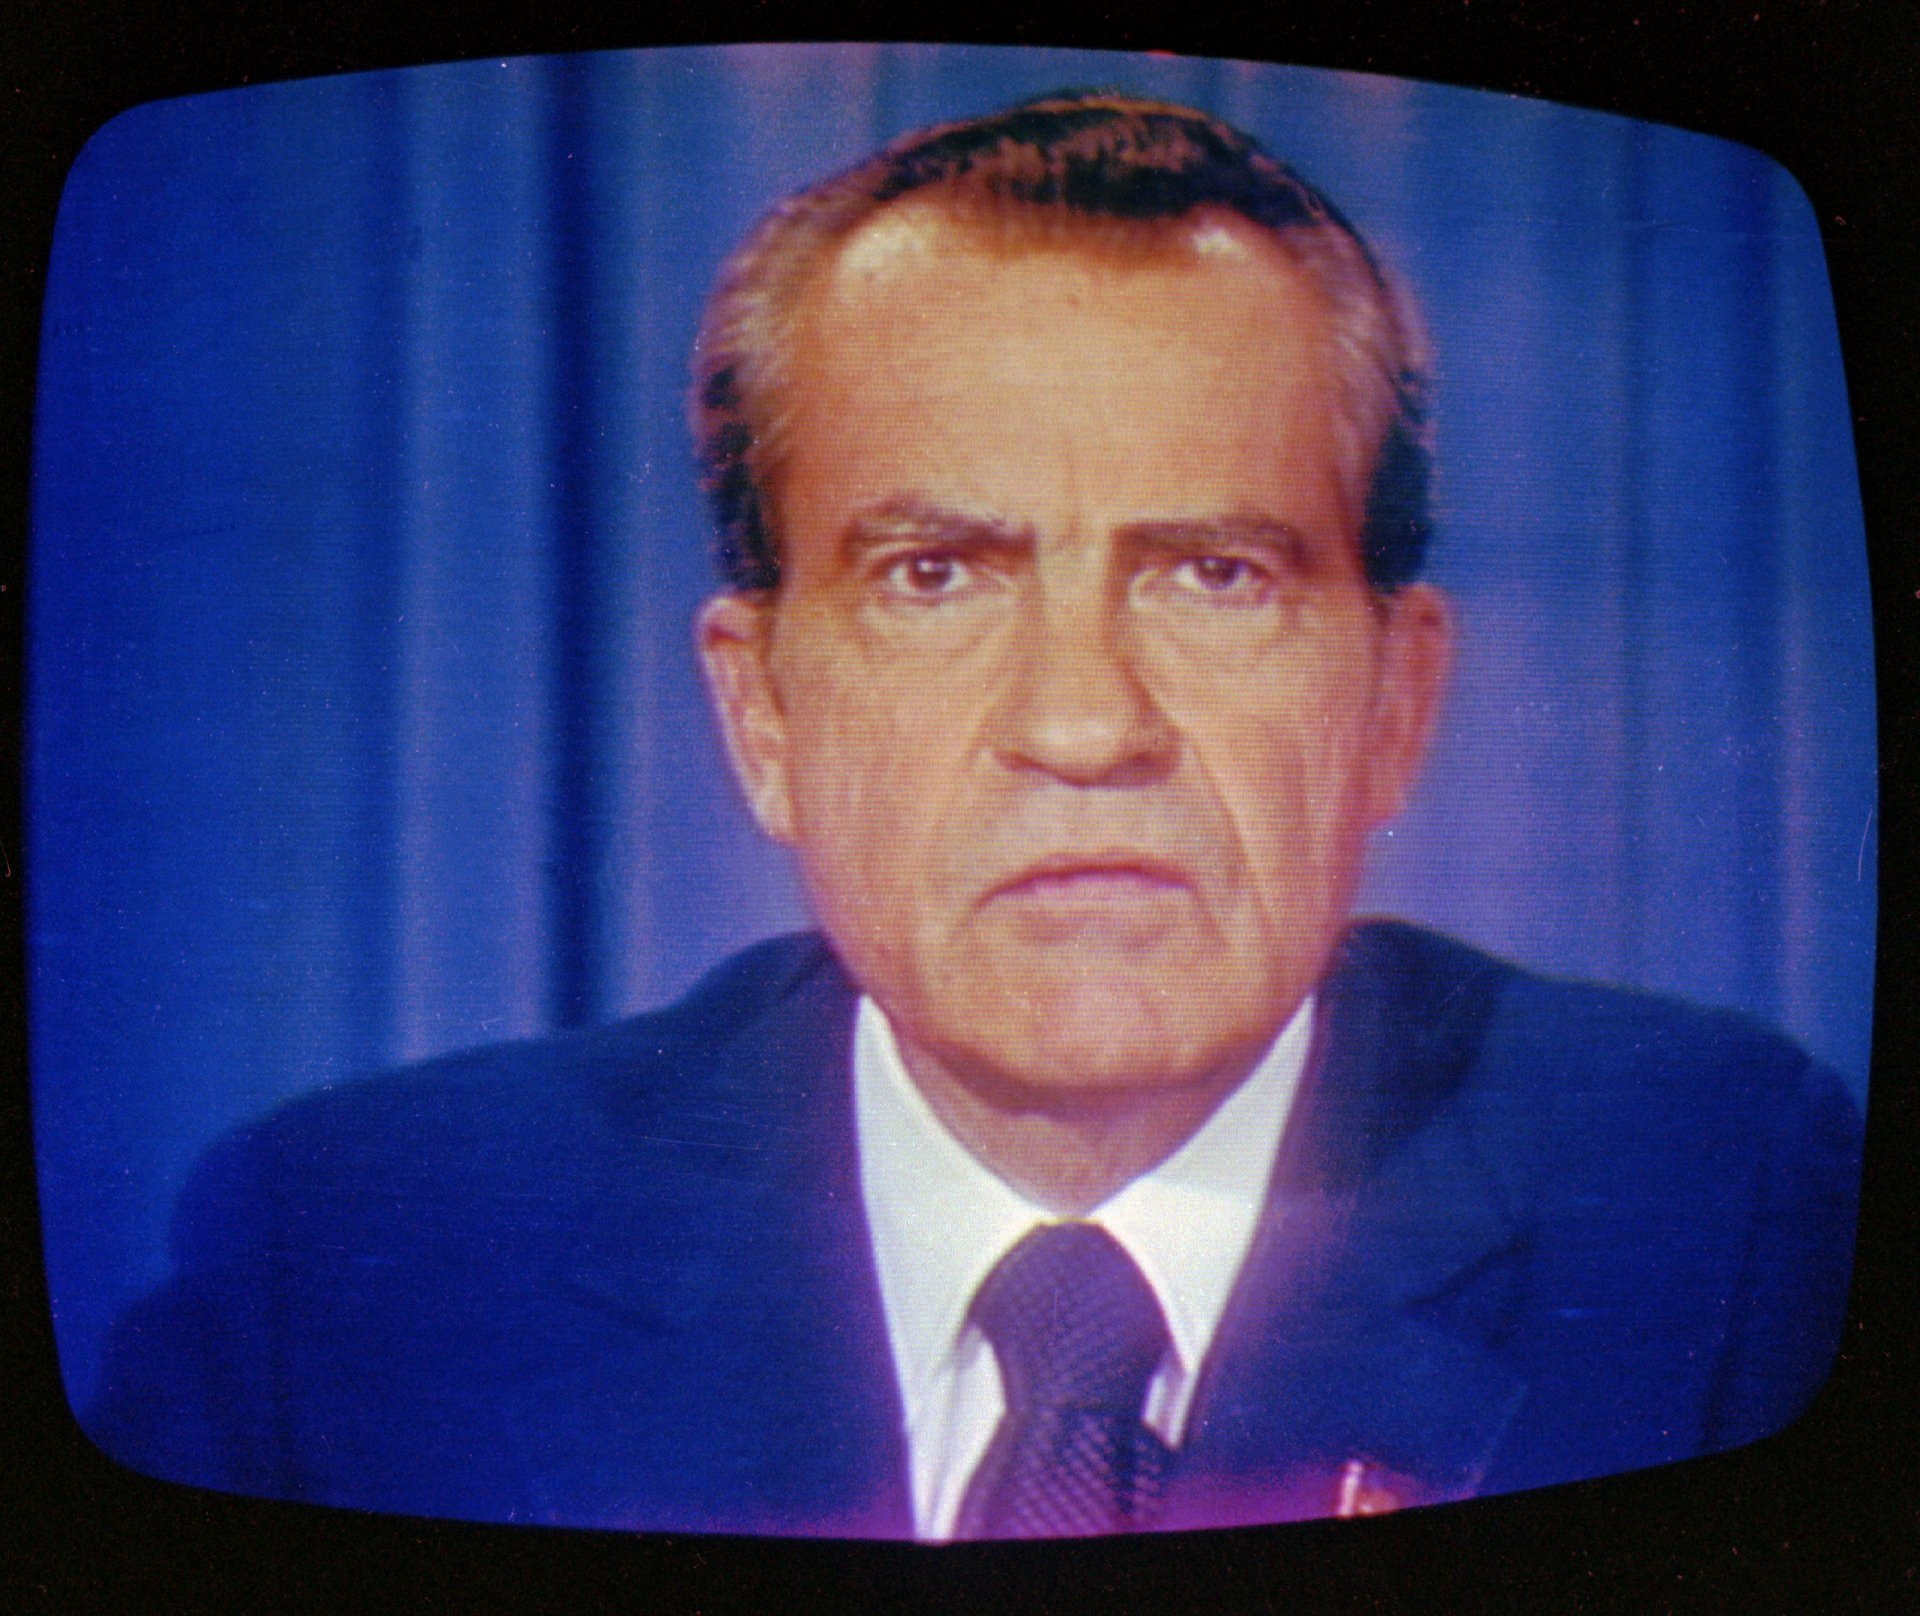 Episode 117 Watergate Unseating A President: White House Whoppers: Six Times A President Misled The